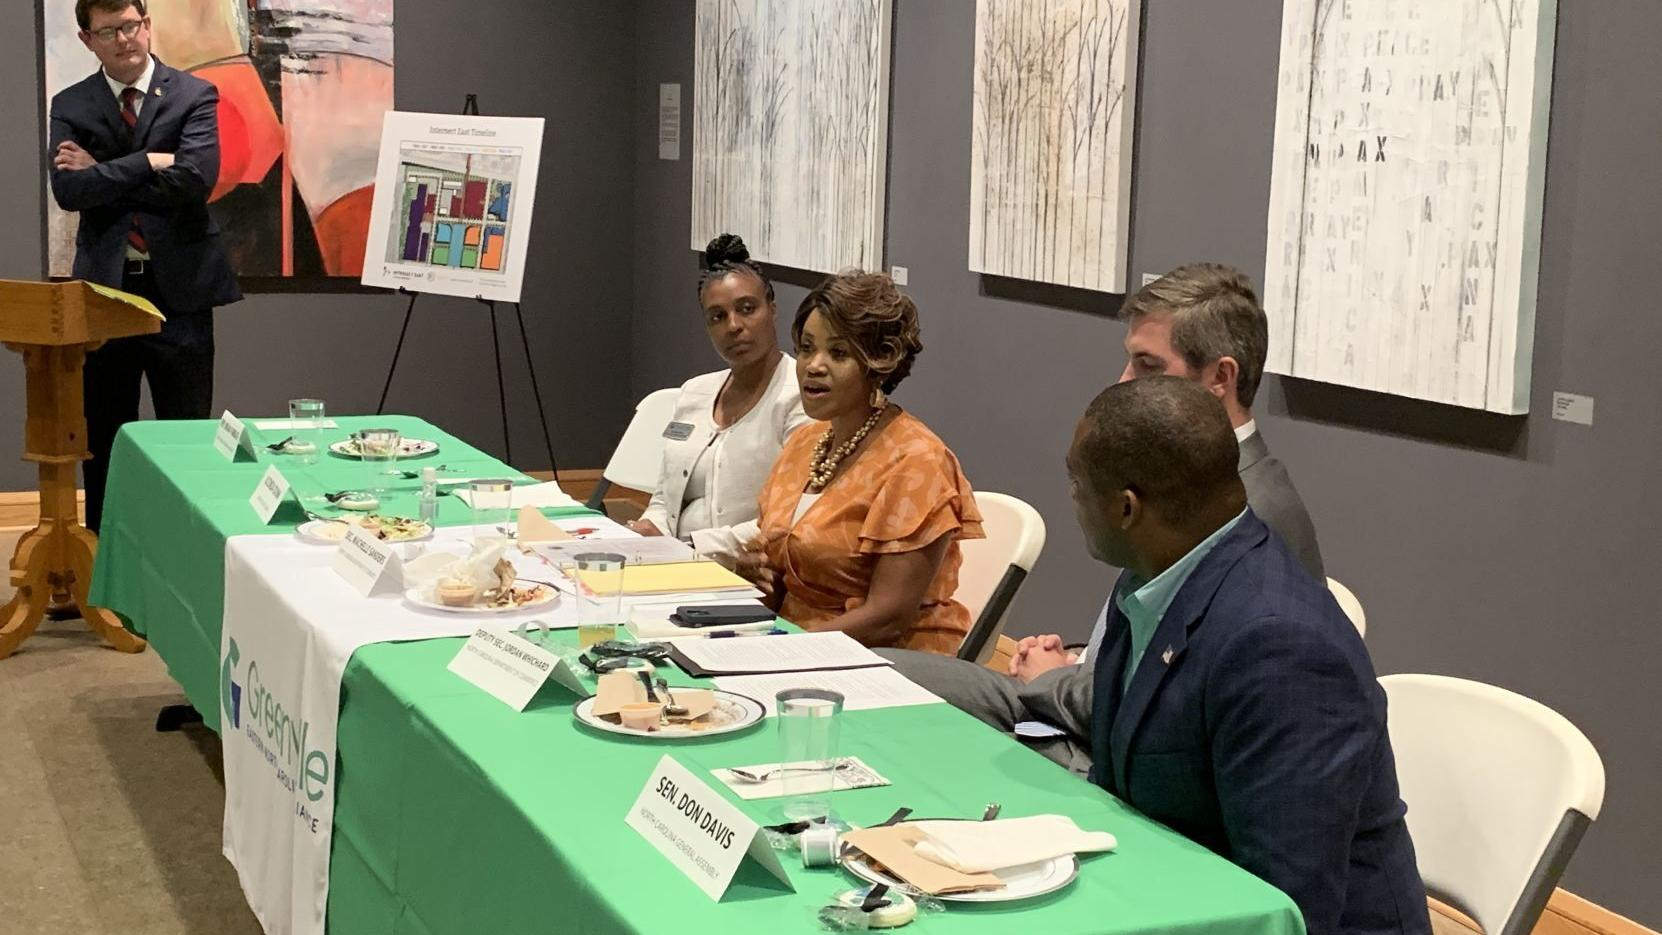 State economic authorities talk infrastructure, industry with Pitt County leadership